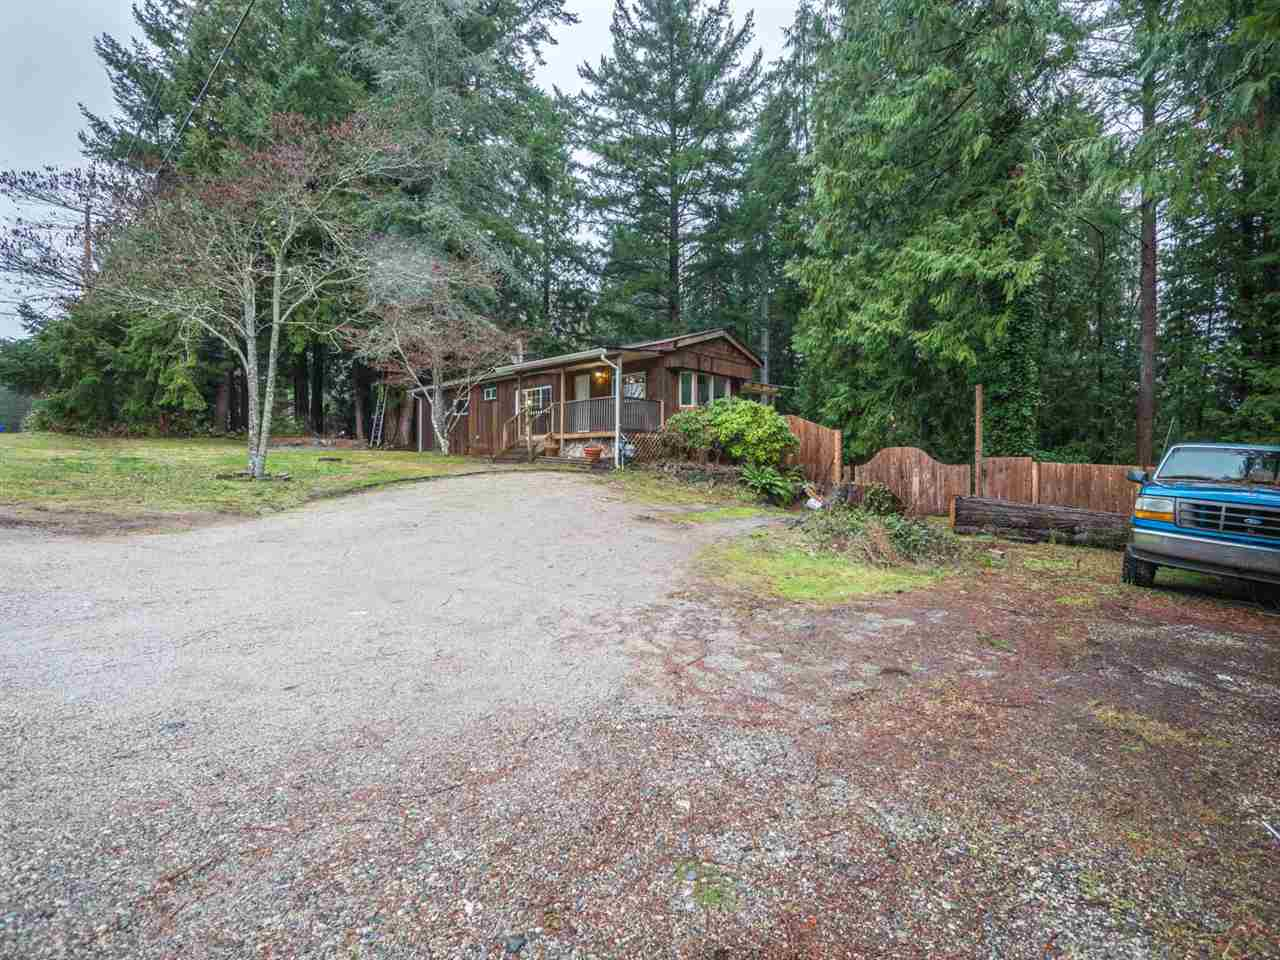 Photo 2: Photos: 5592 WAKEFIELD Road in Sechelt: Sechelt District Manufactured Home for sale (Sunshine Coast)  : MLS®# R2230720